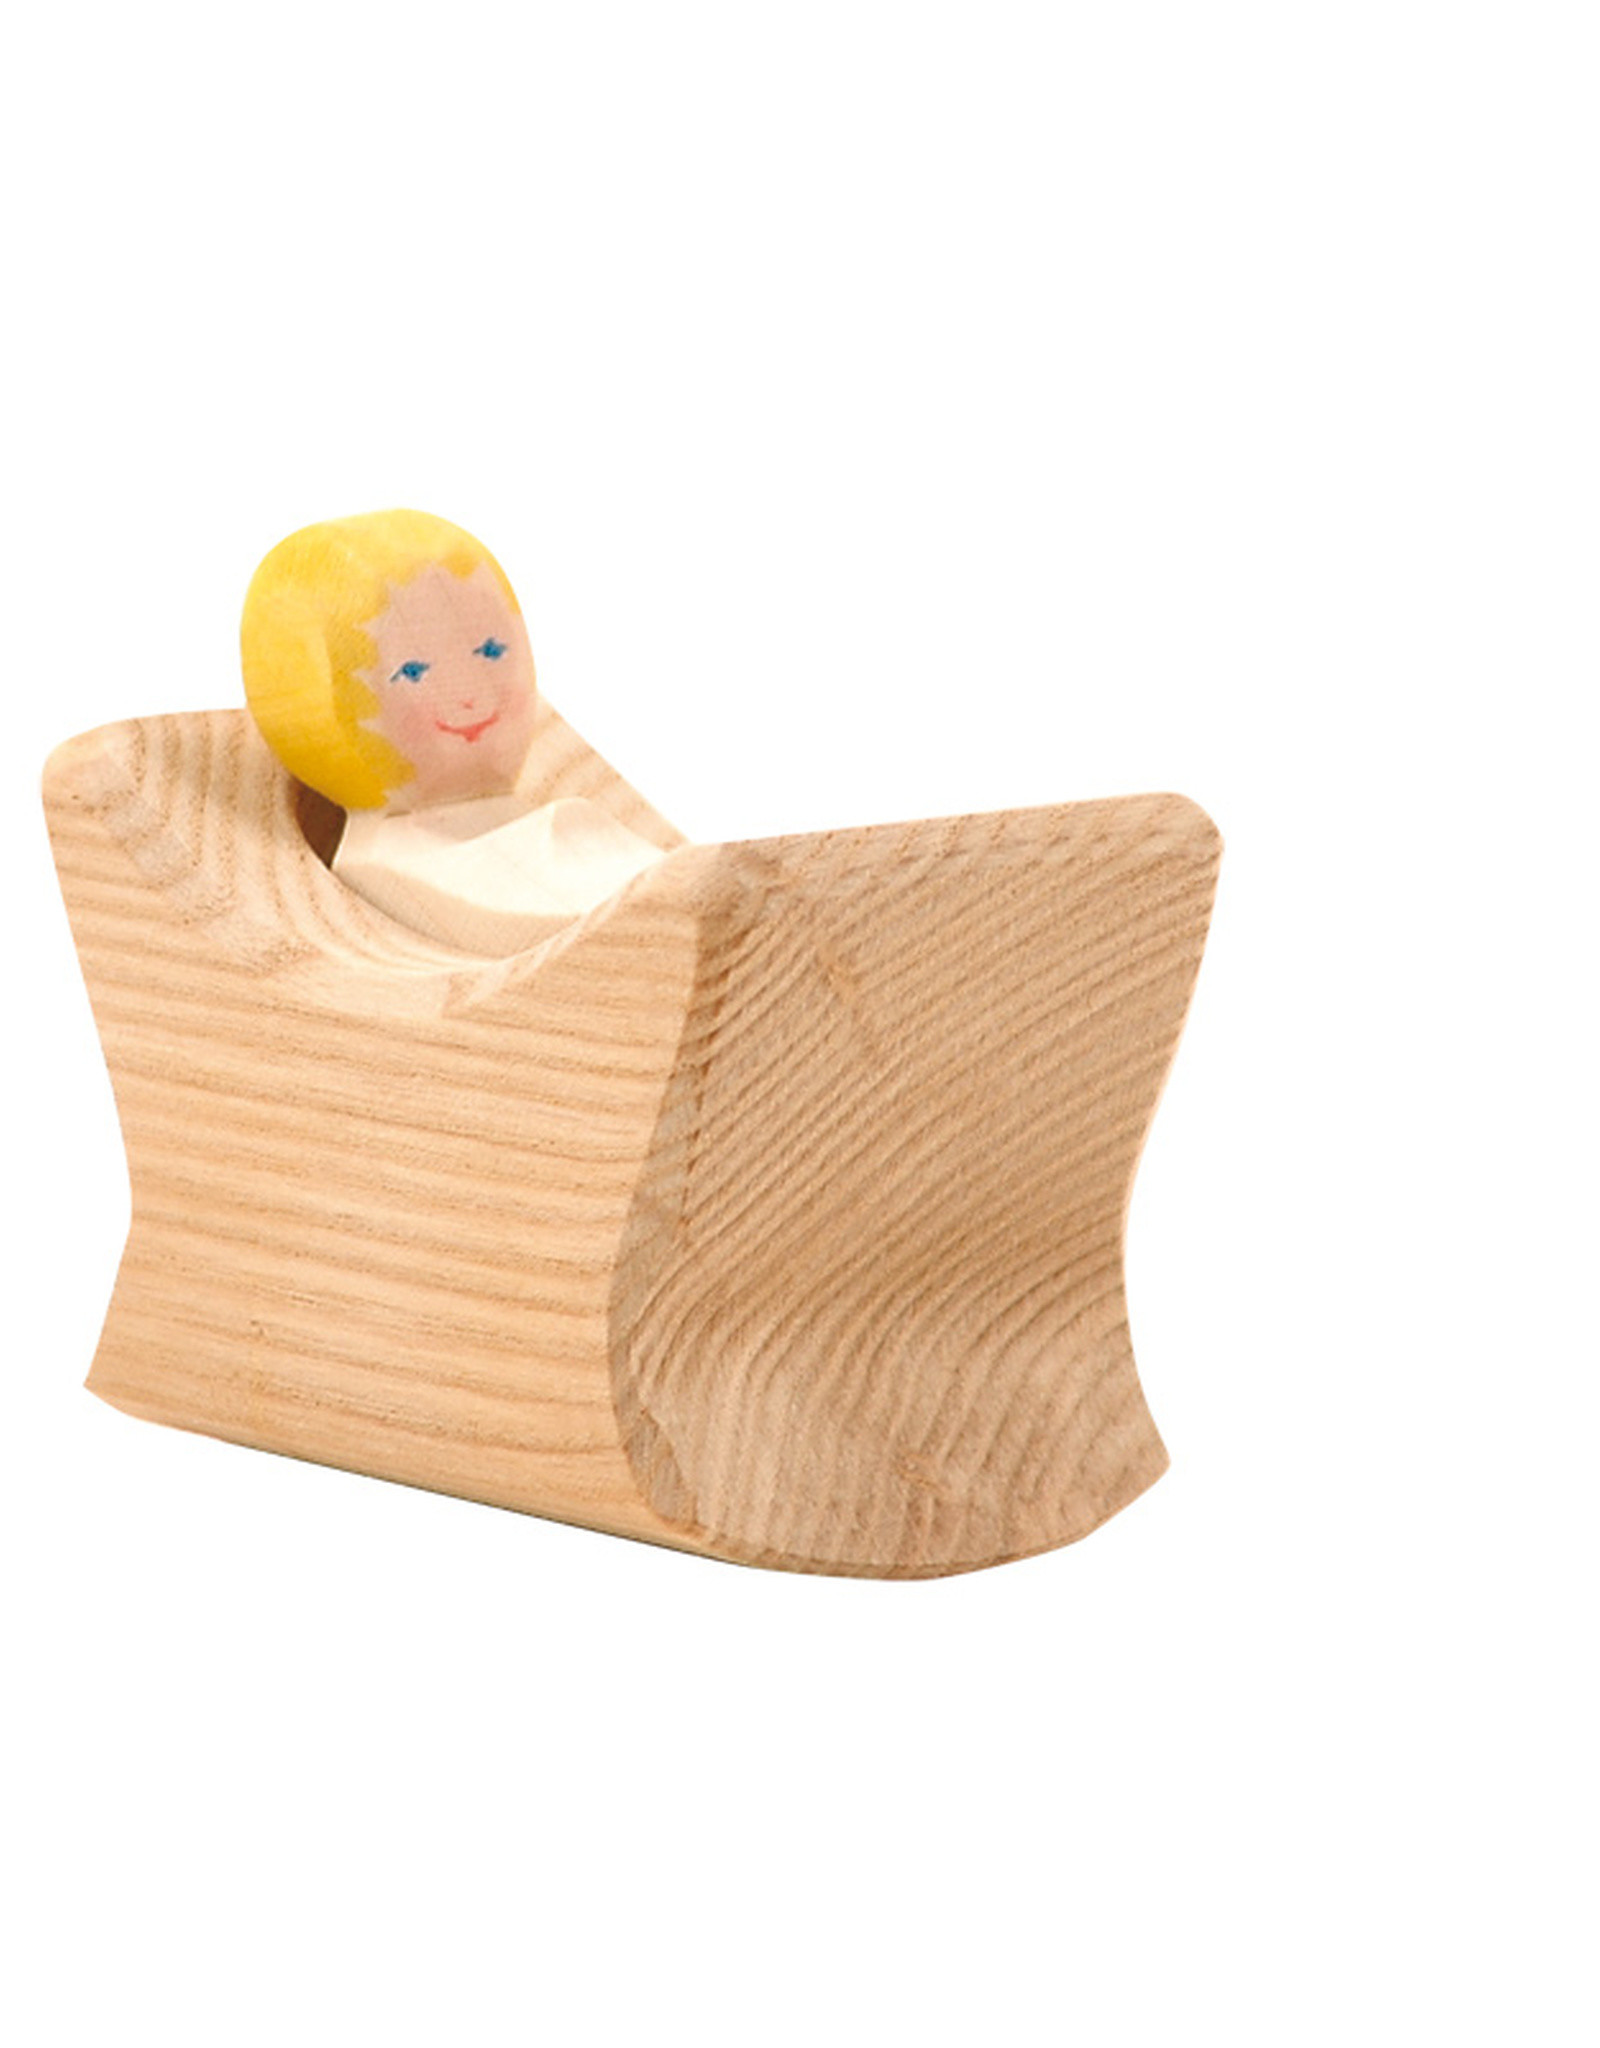 Ostheimer Child in Crib 2 pcs